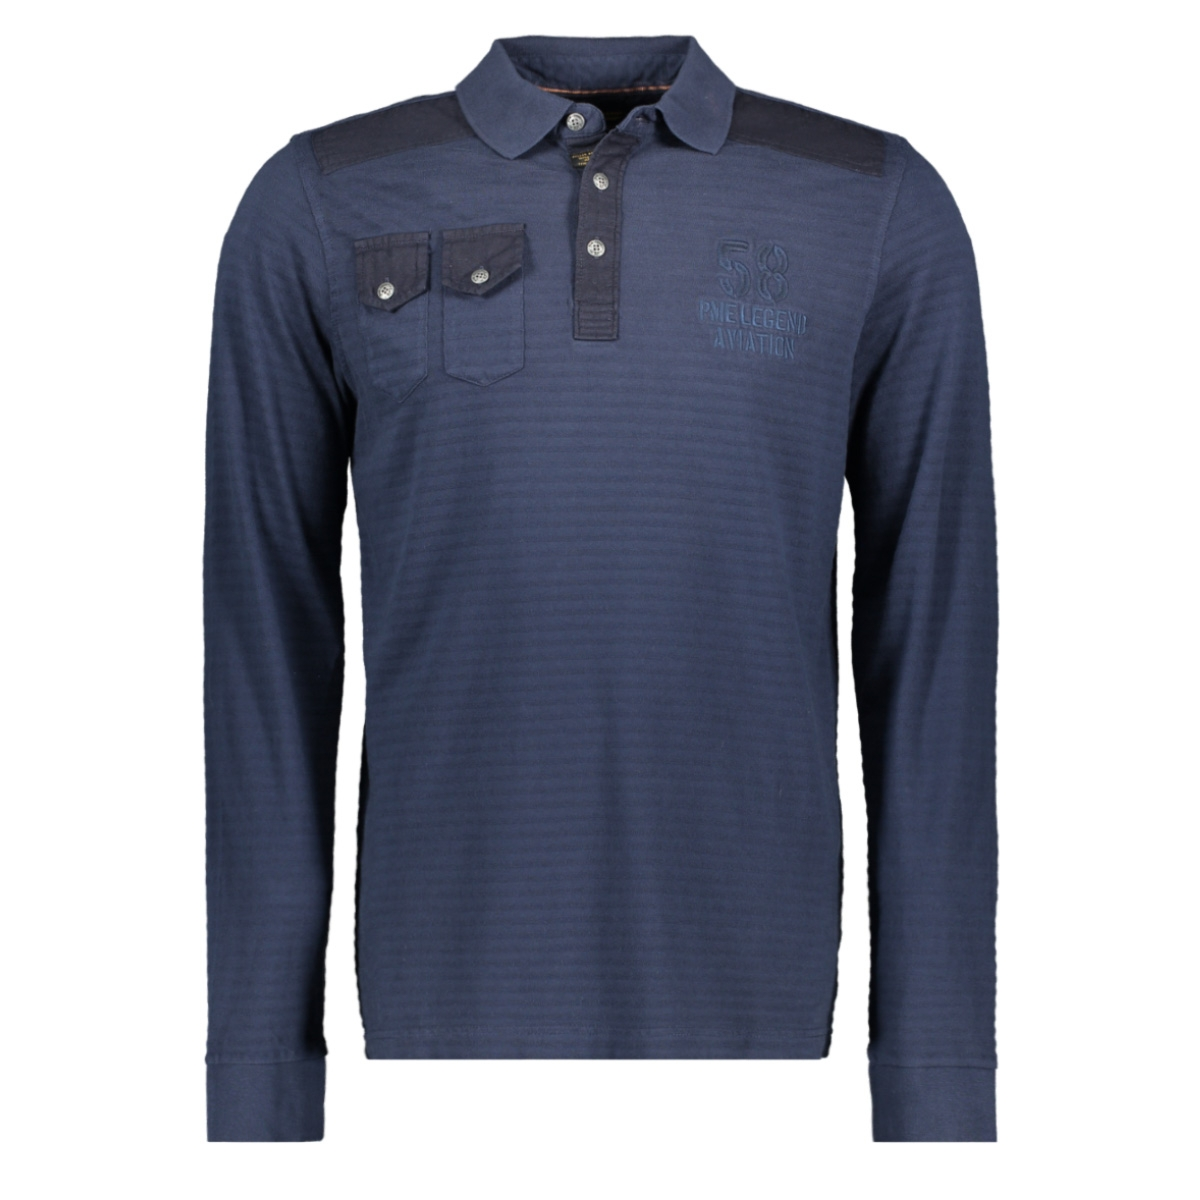 long sleeve polo pps196874 pme legend polo 5281